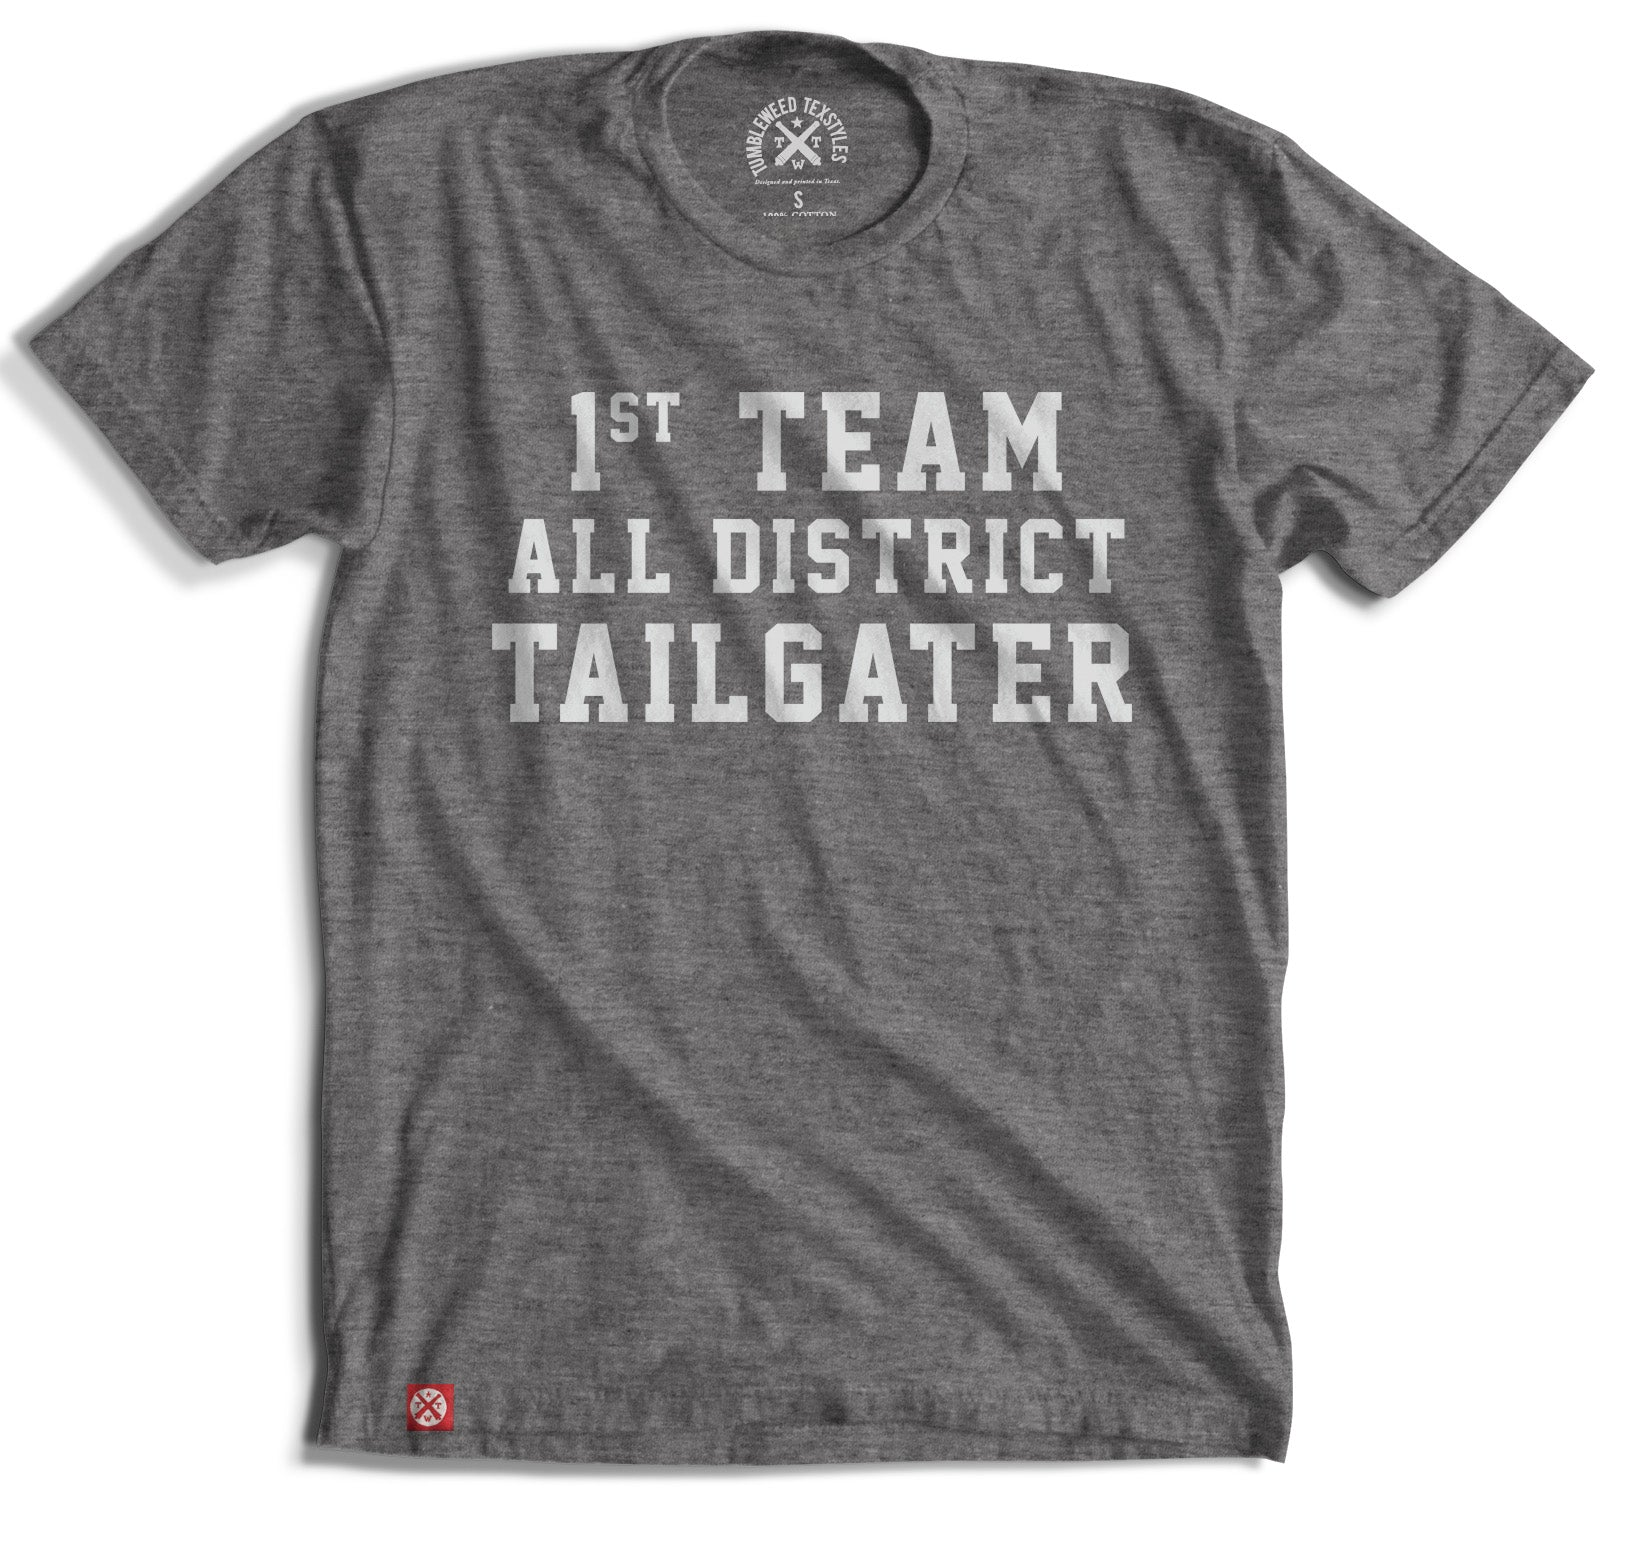 1st Team All District Tailgater T-shirt